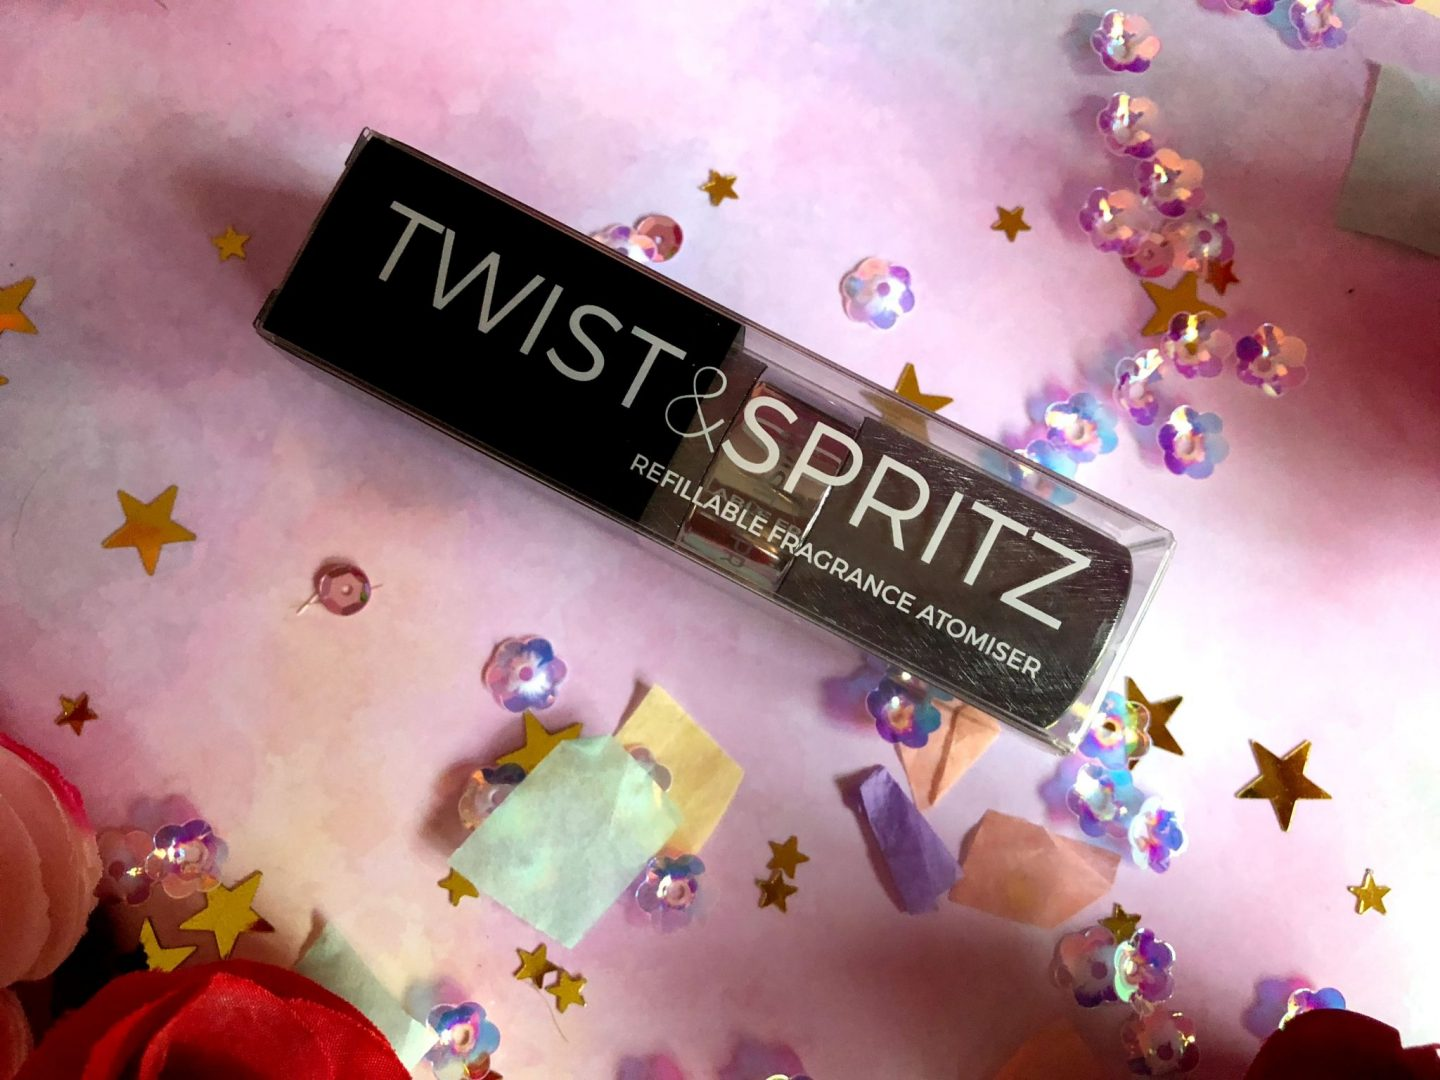 Twist & Spritz Refillable Atomiser Spray